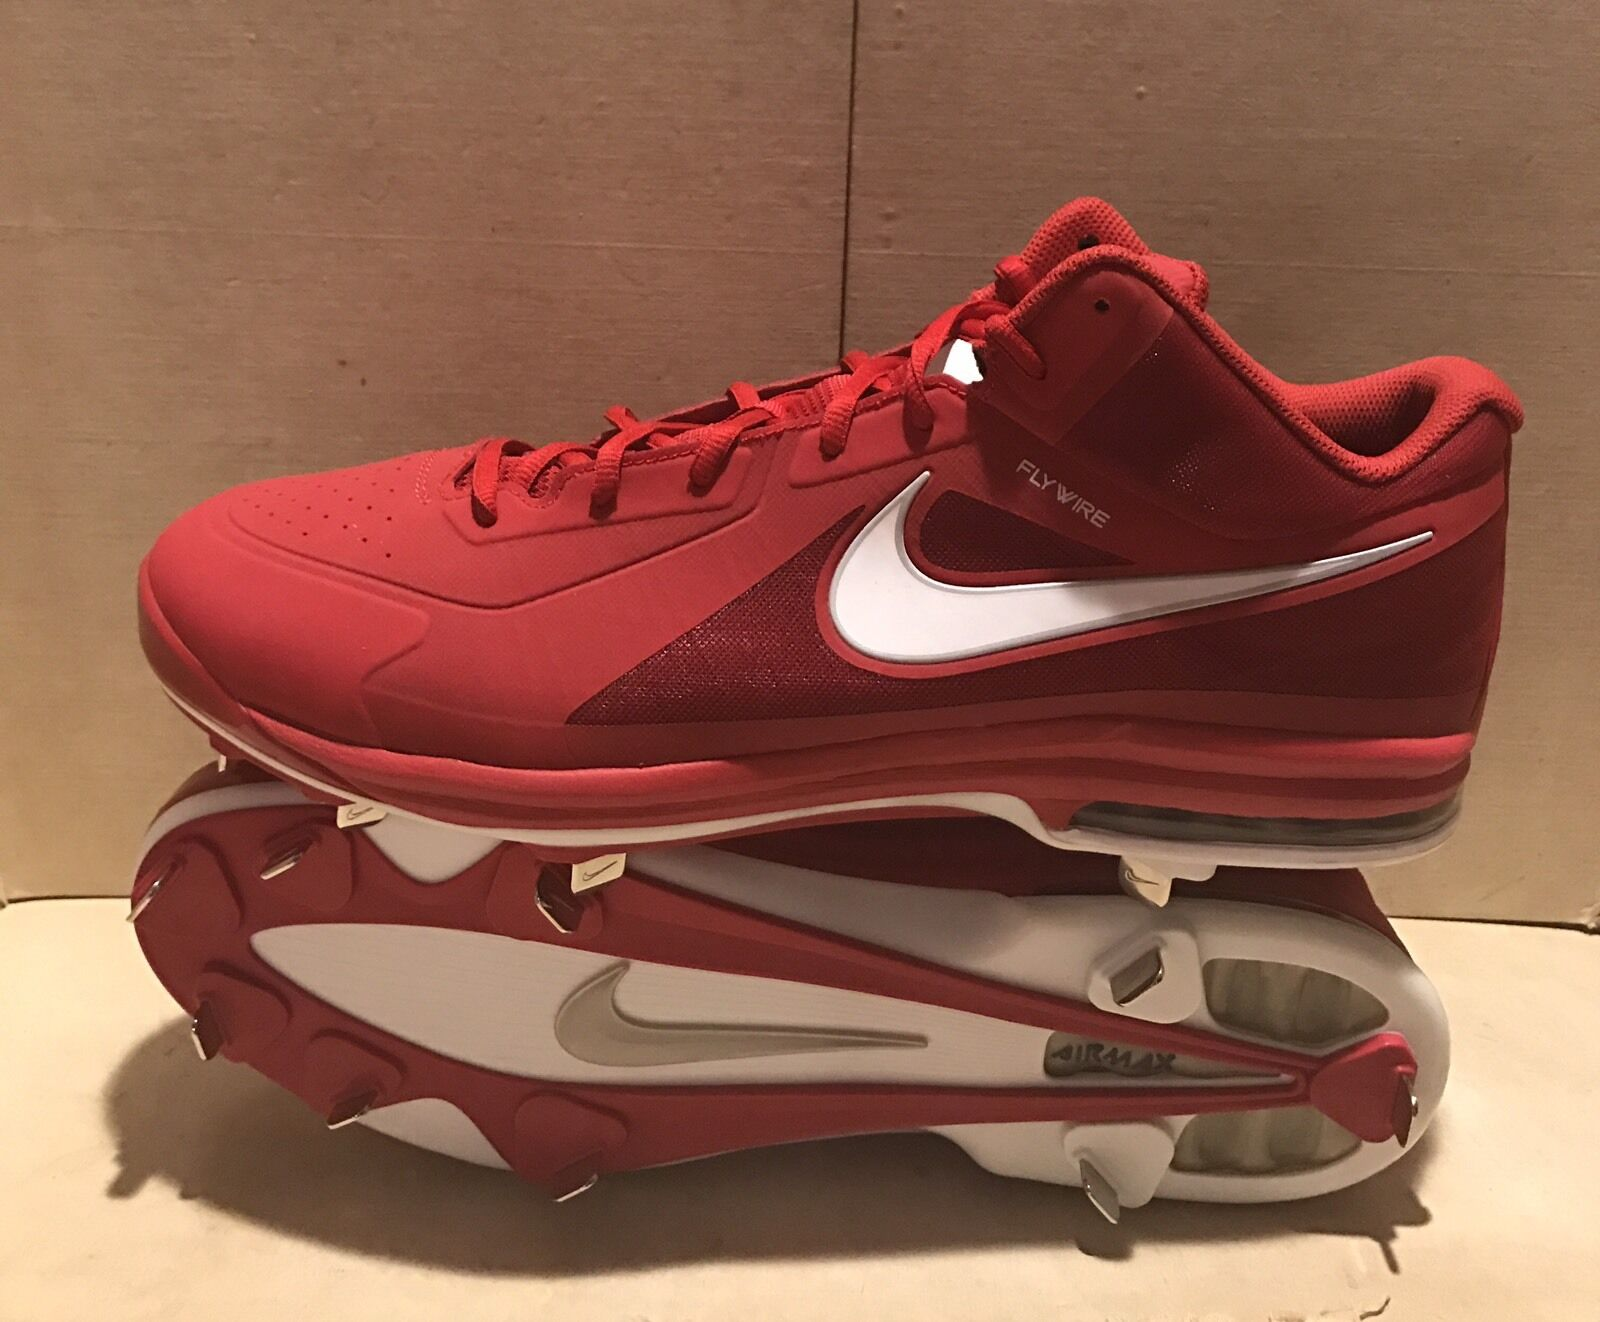 New Cleats NIKE AIR MAX MVP ELITE Mid Metal Baseball Cleats New Mens 16 Red 524957-610 c9fe29